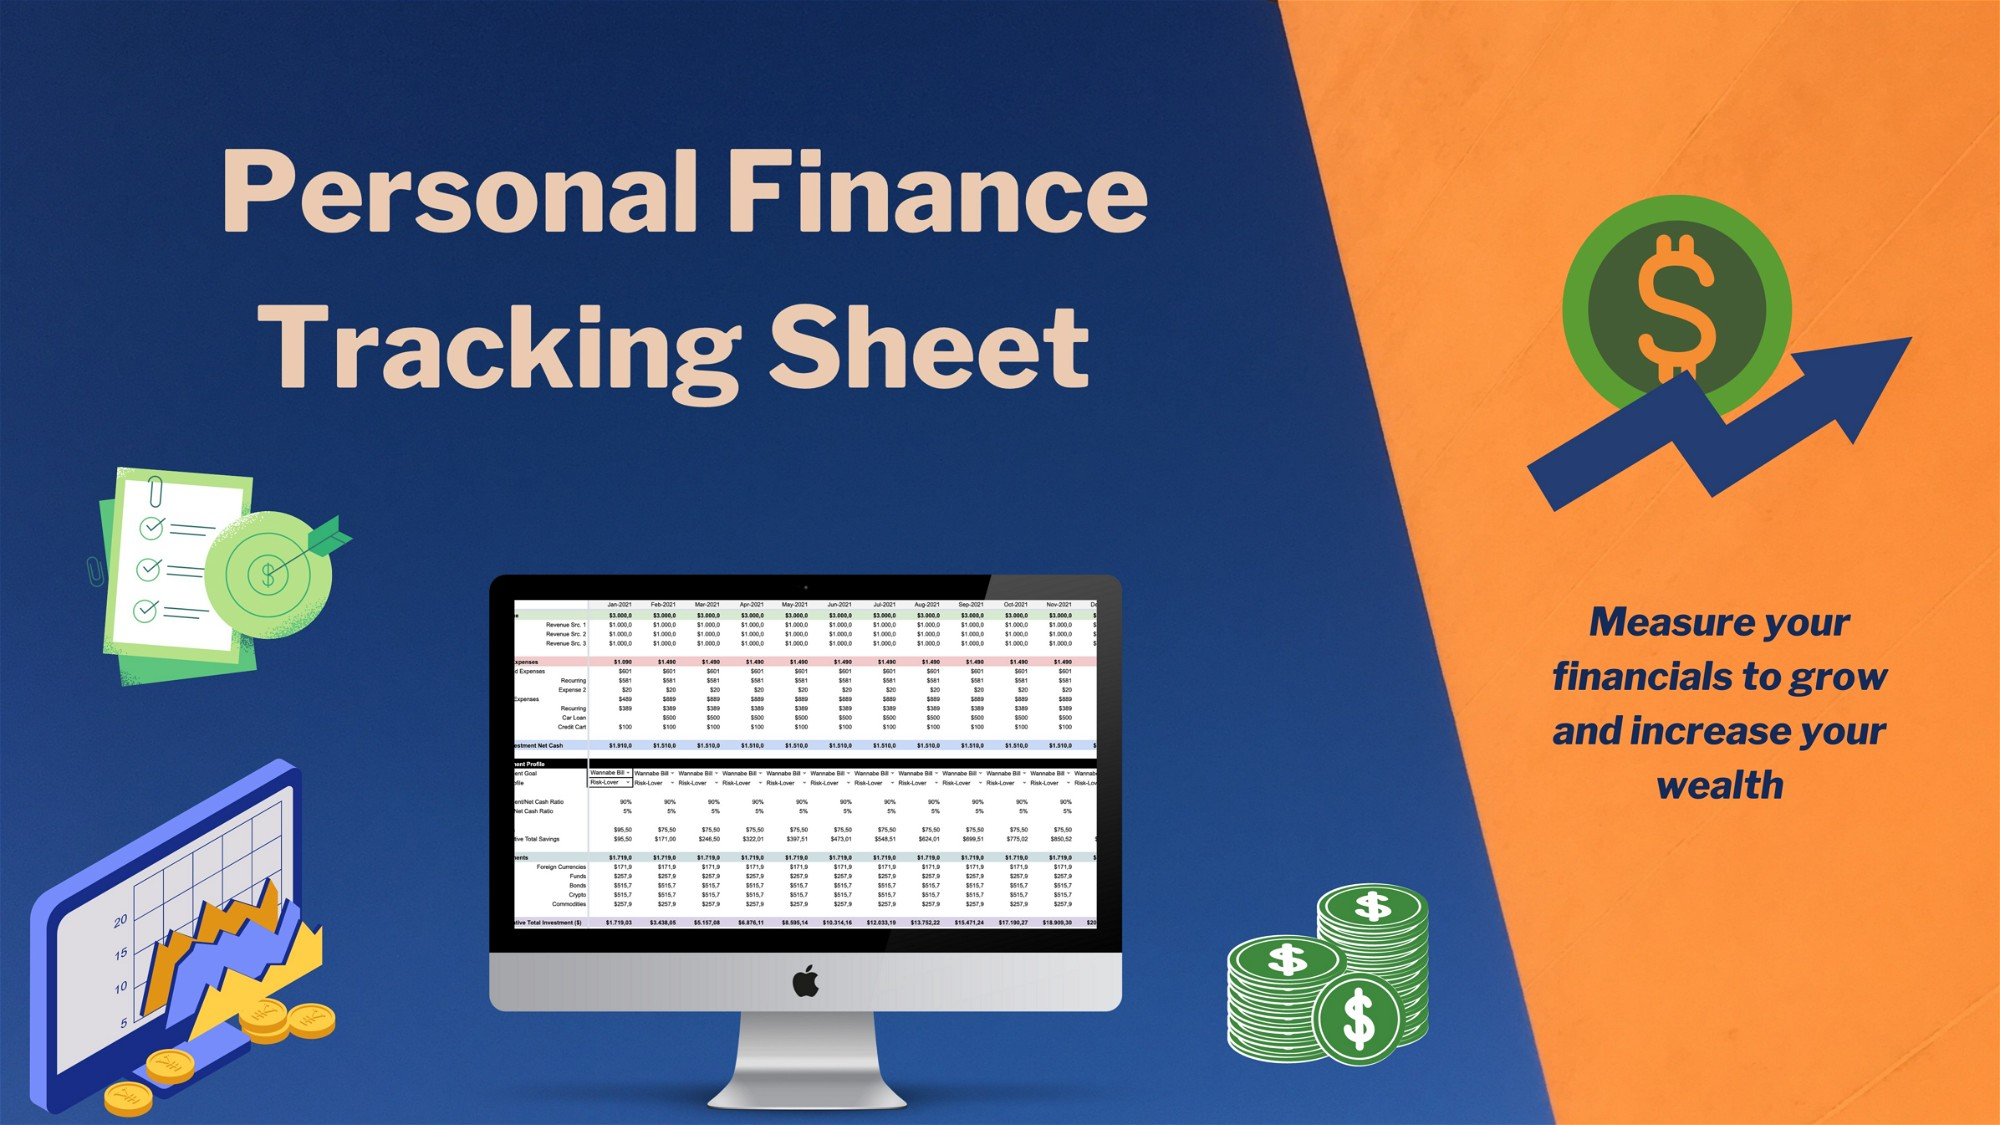 AppSumo Deal for Personal Finance Tracking Sheet